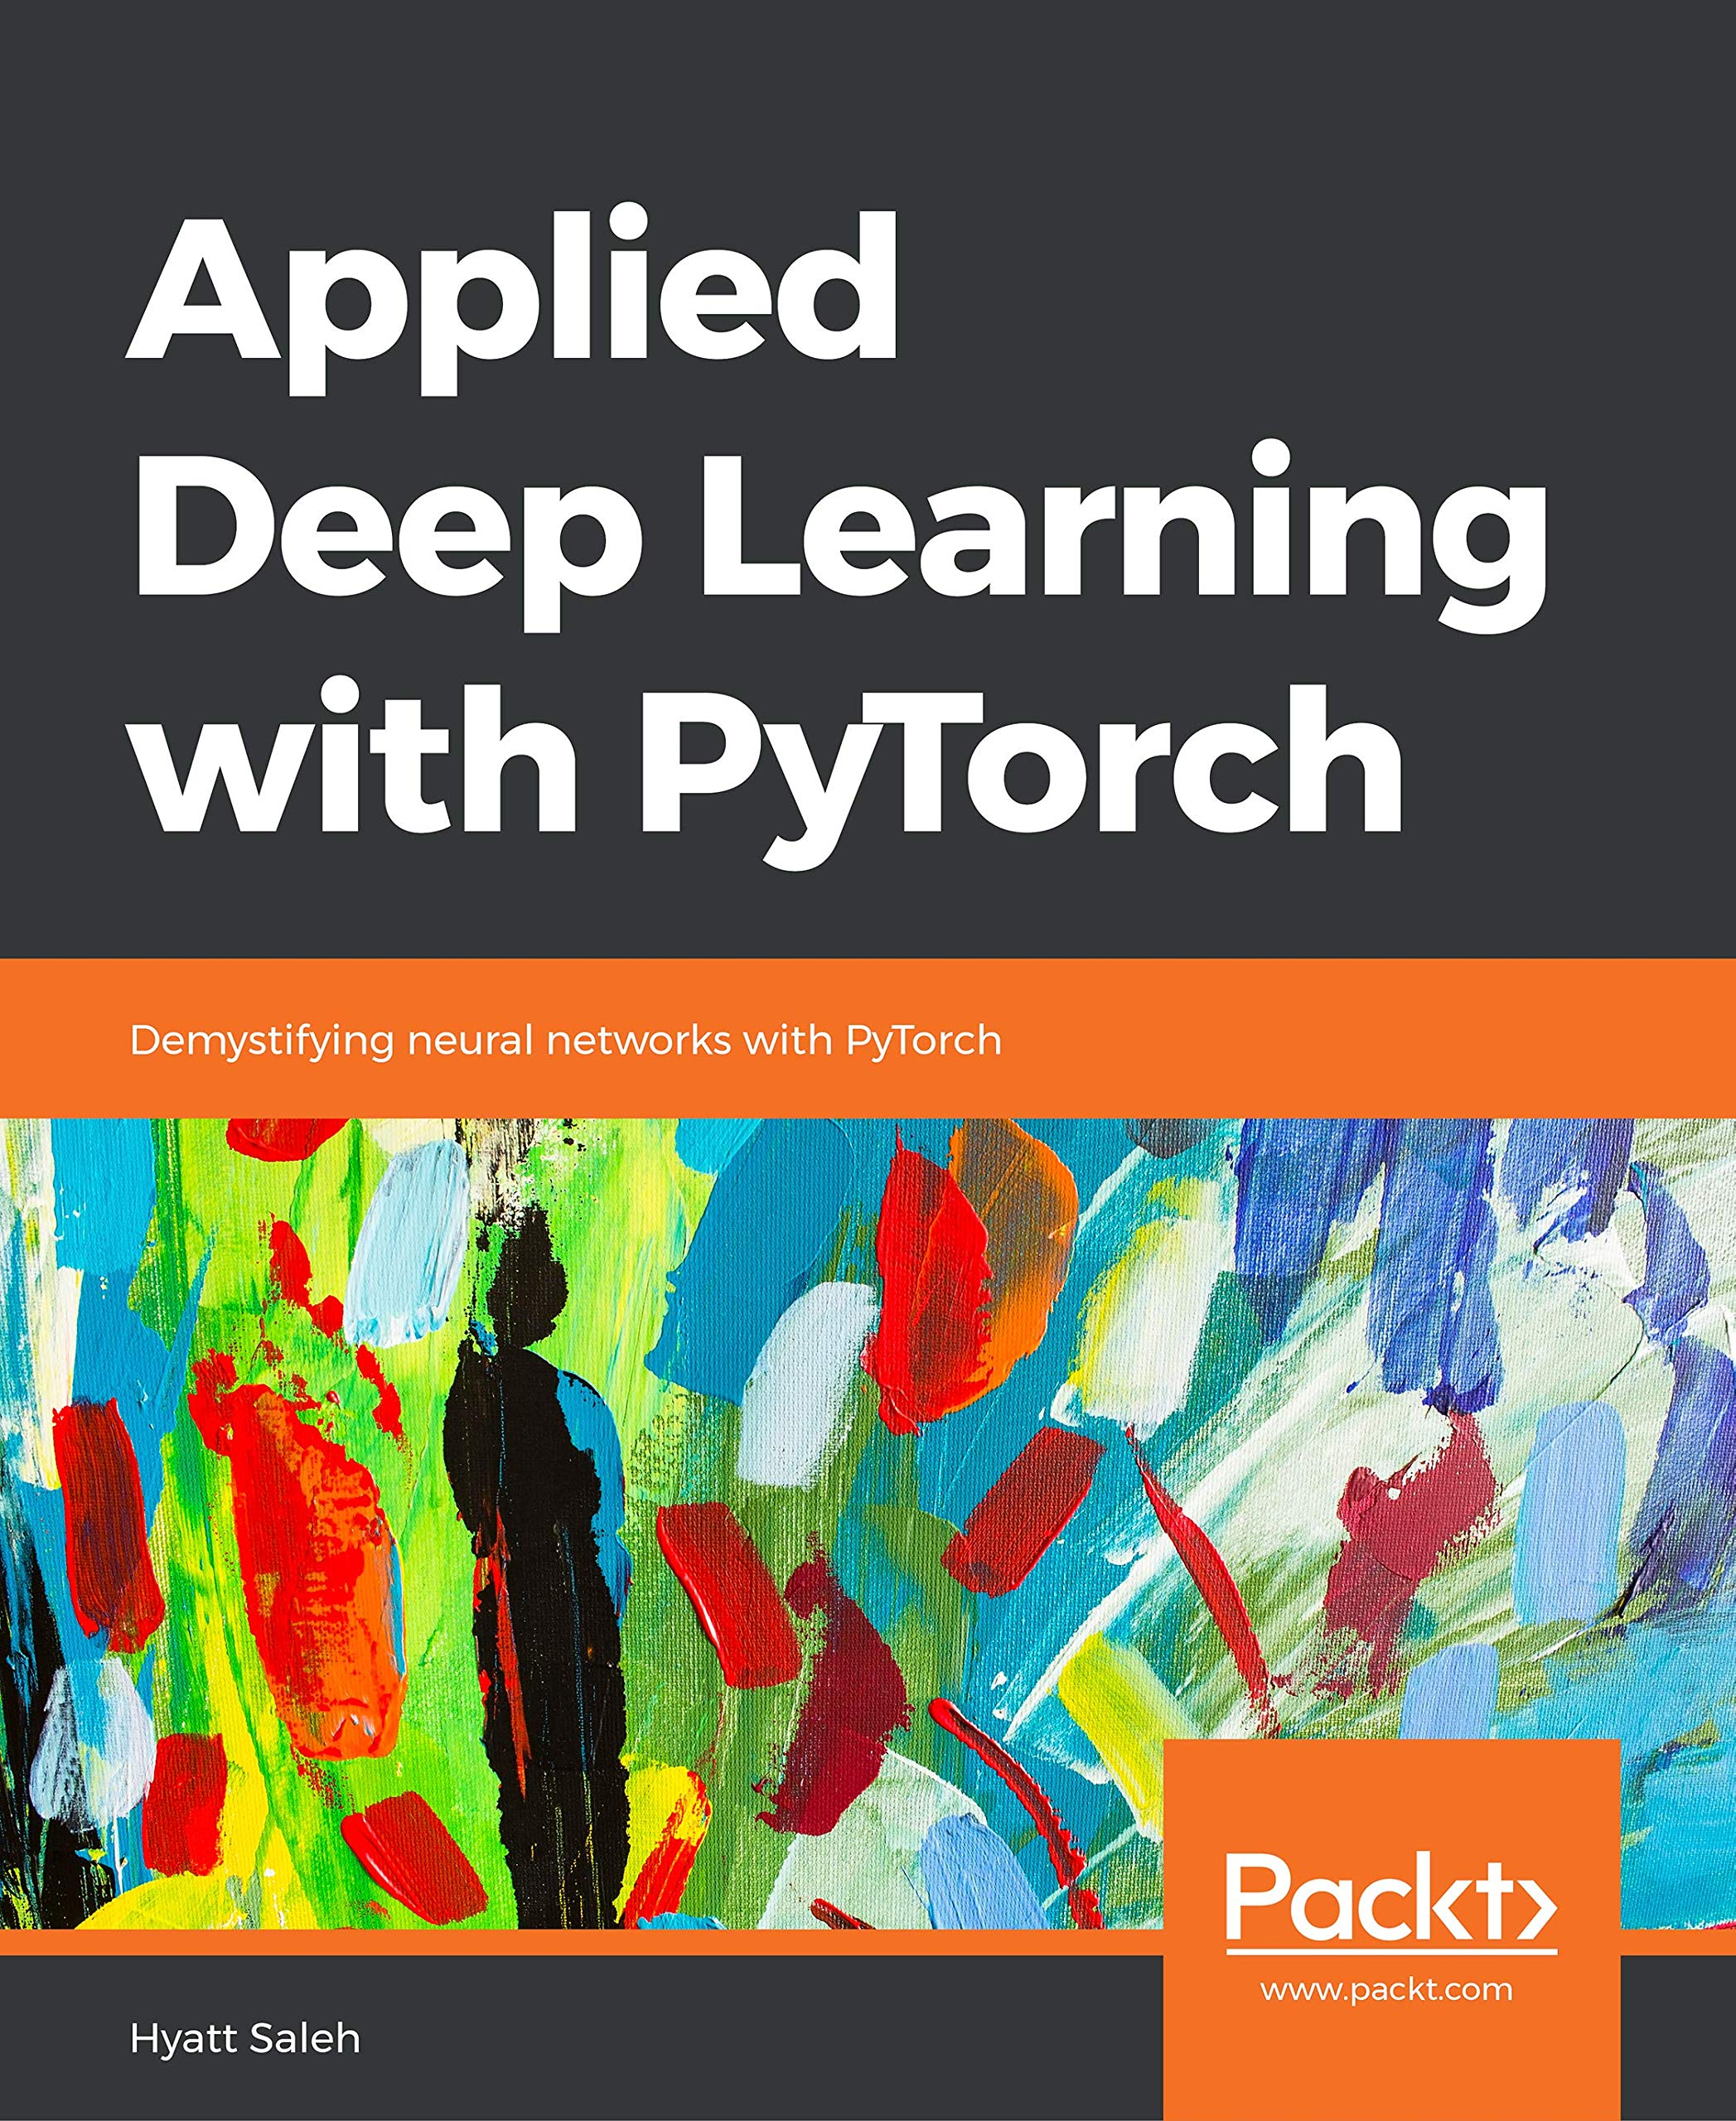 Applied Deep Learning with PyTorch: Demystifying neural networks